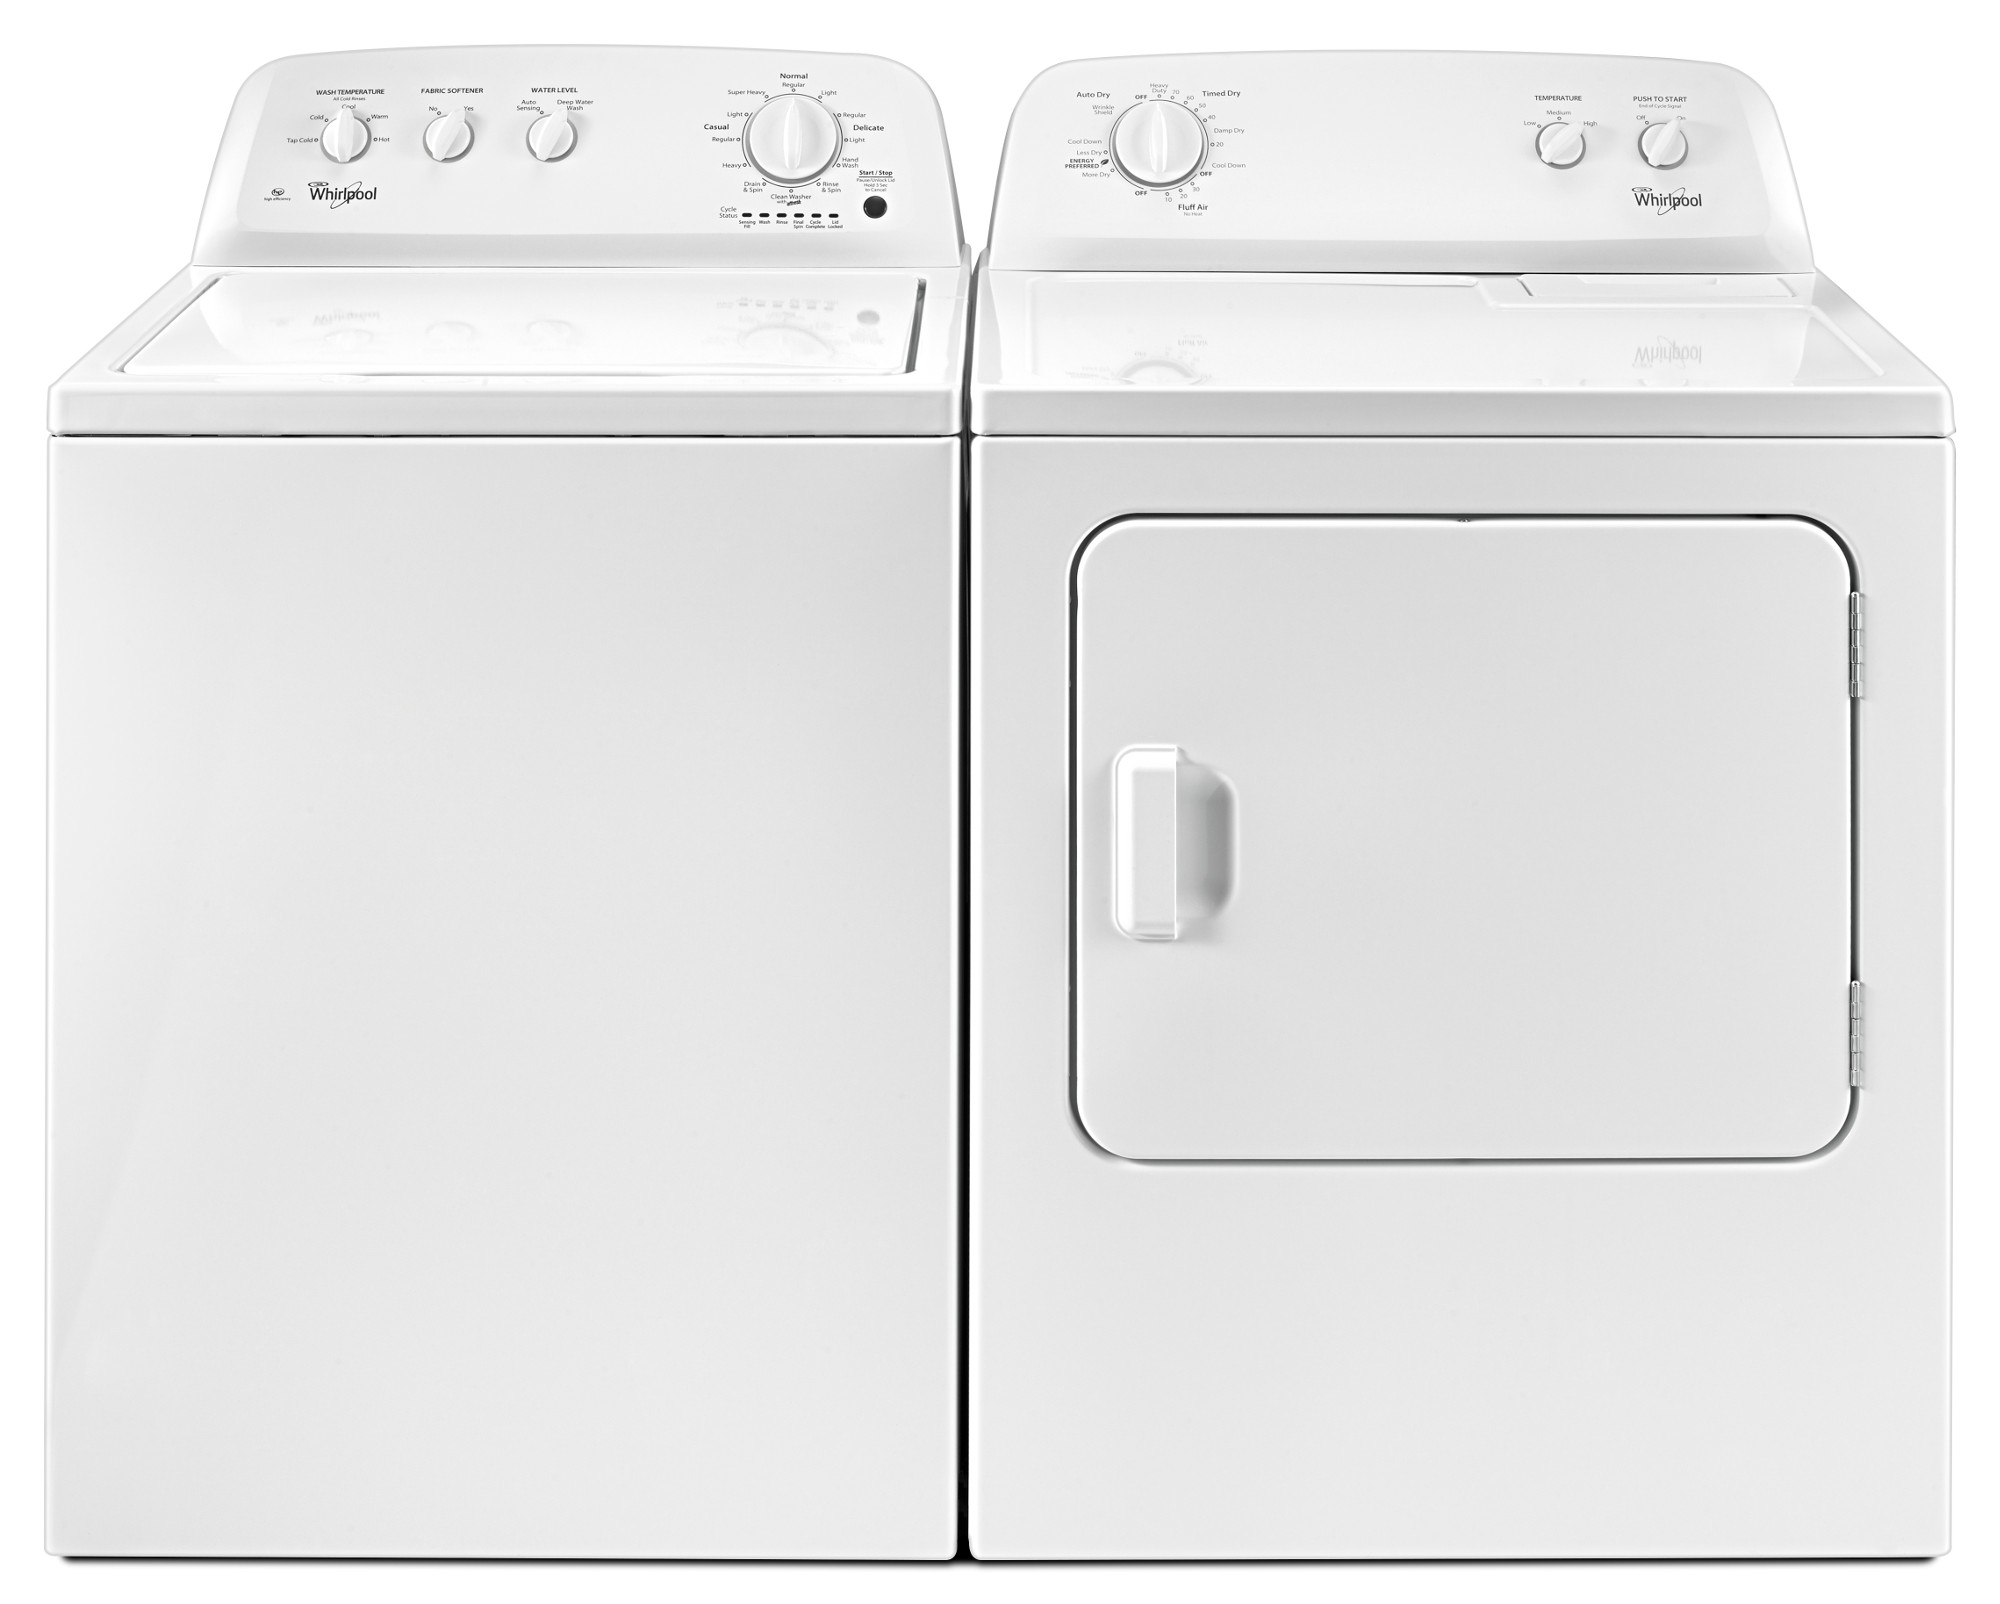 Whirlpool WTW4616FW 3.5 cu. ft. Top Load Washer w/ Deep Water Wash Option - White